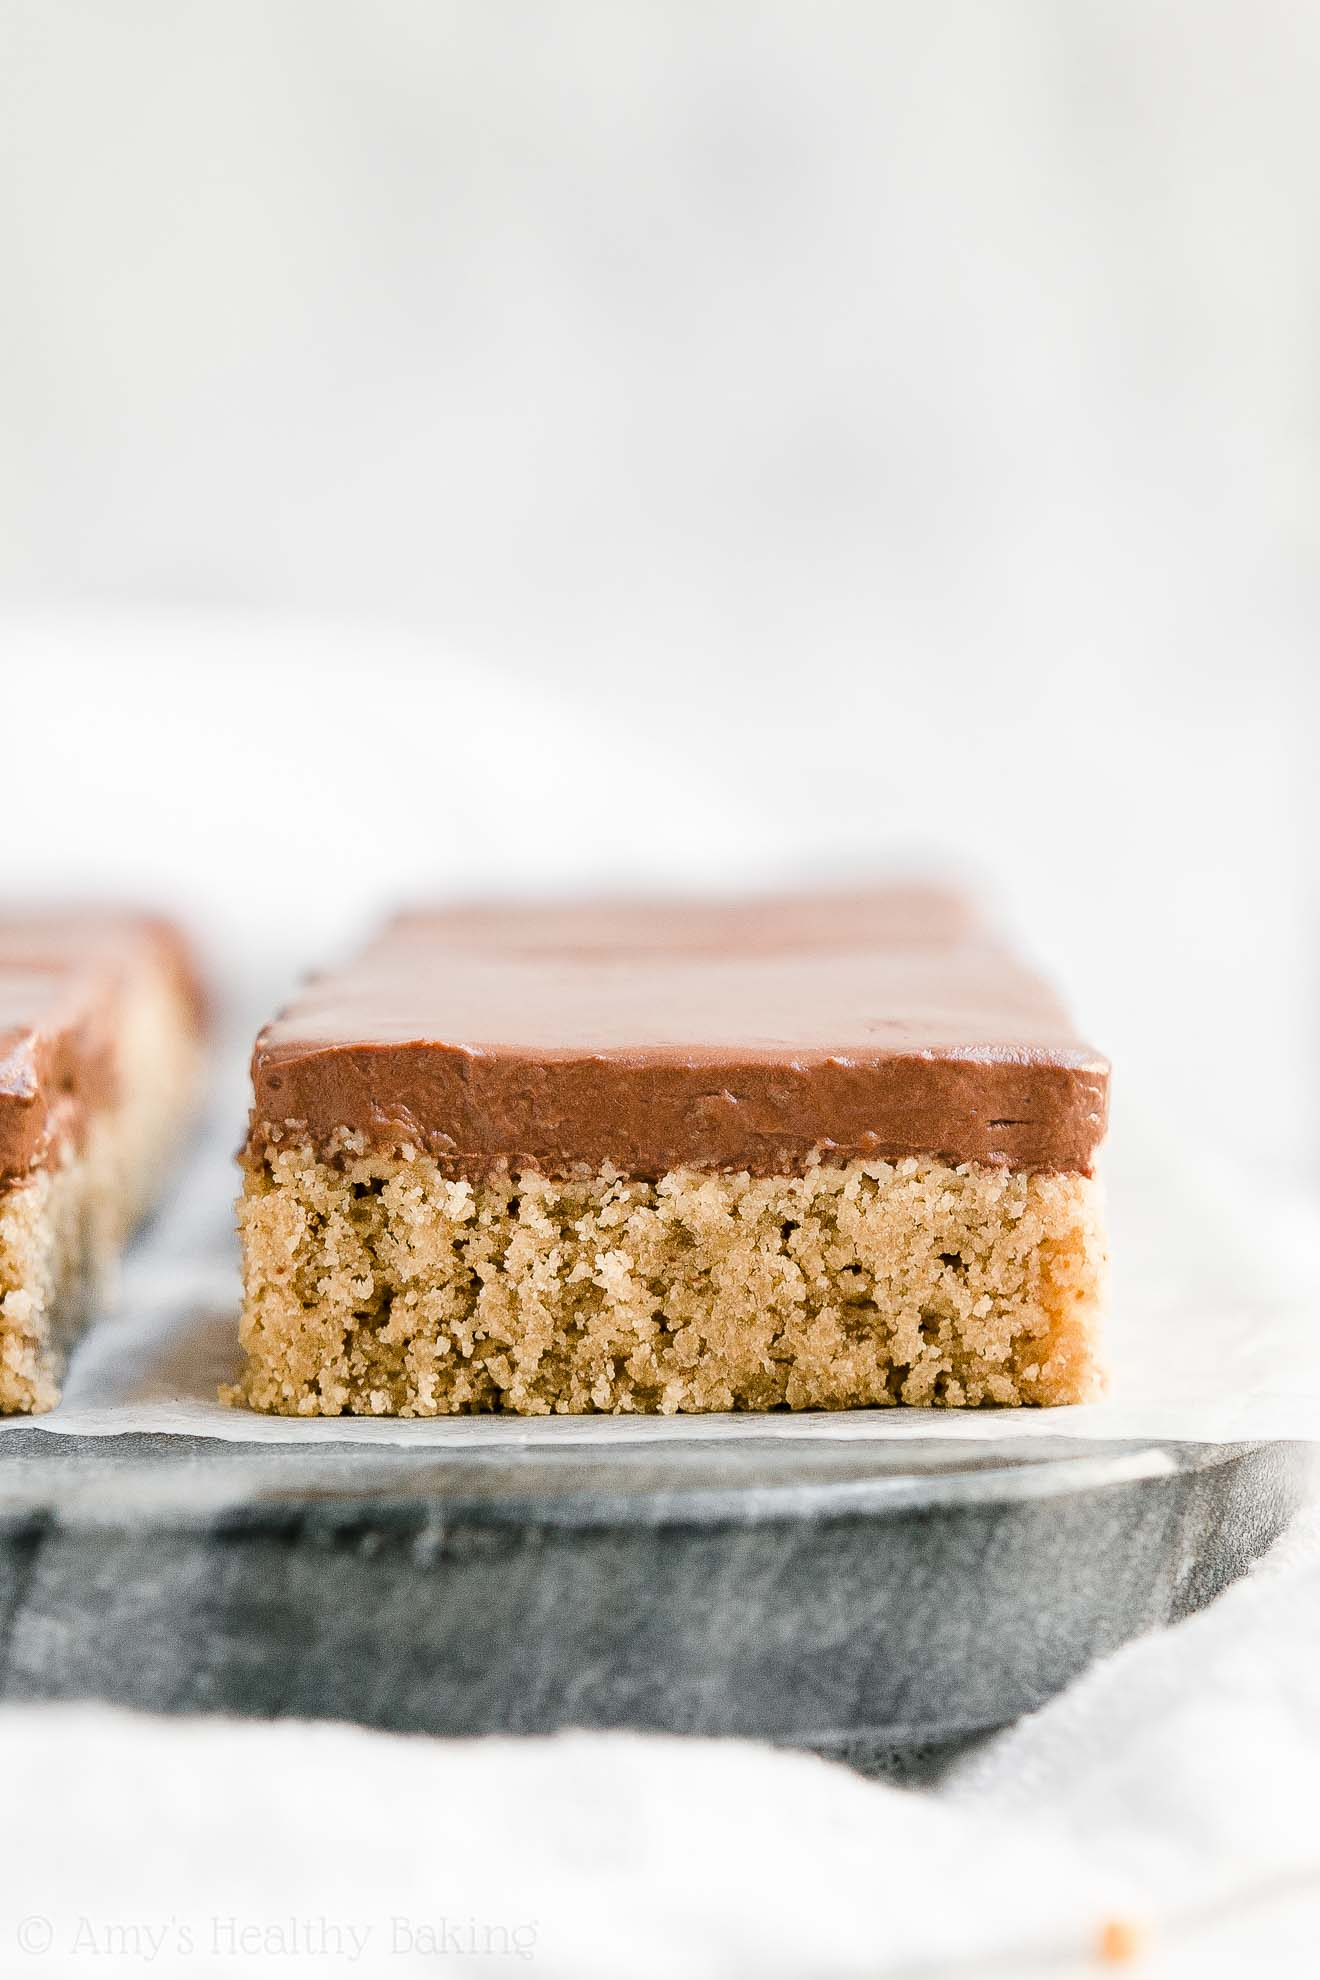 Easy Low Calorie Healthy Flourless Peanut Butter Cookie Bars